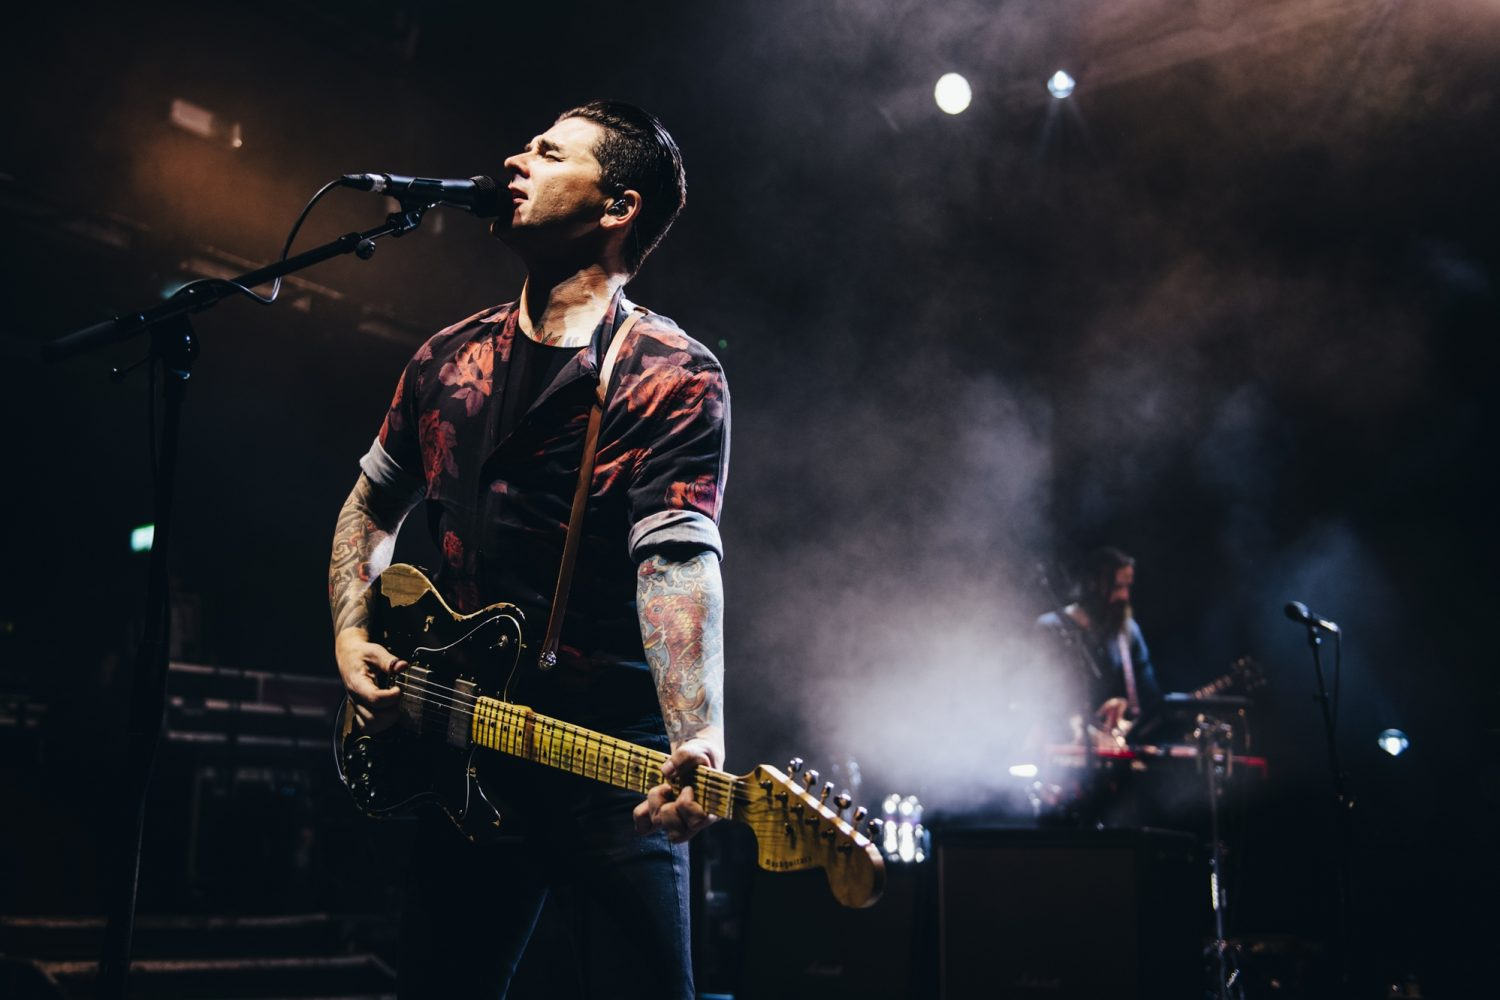 Chris Carrabba has reimagined three Dashboard Confessional albums